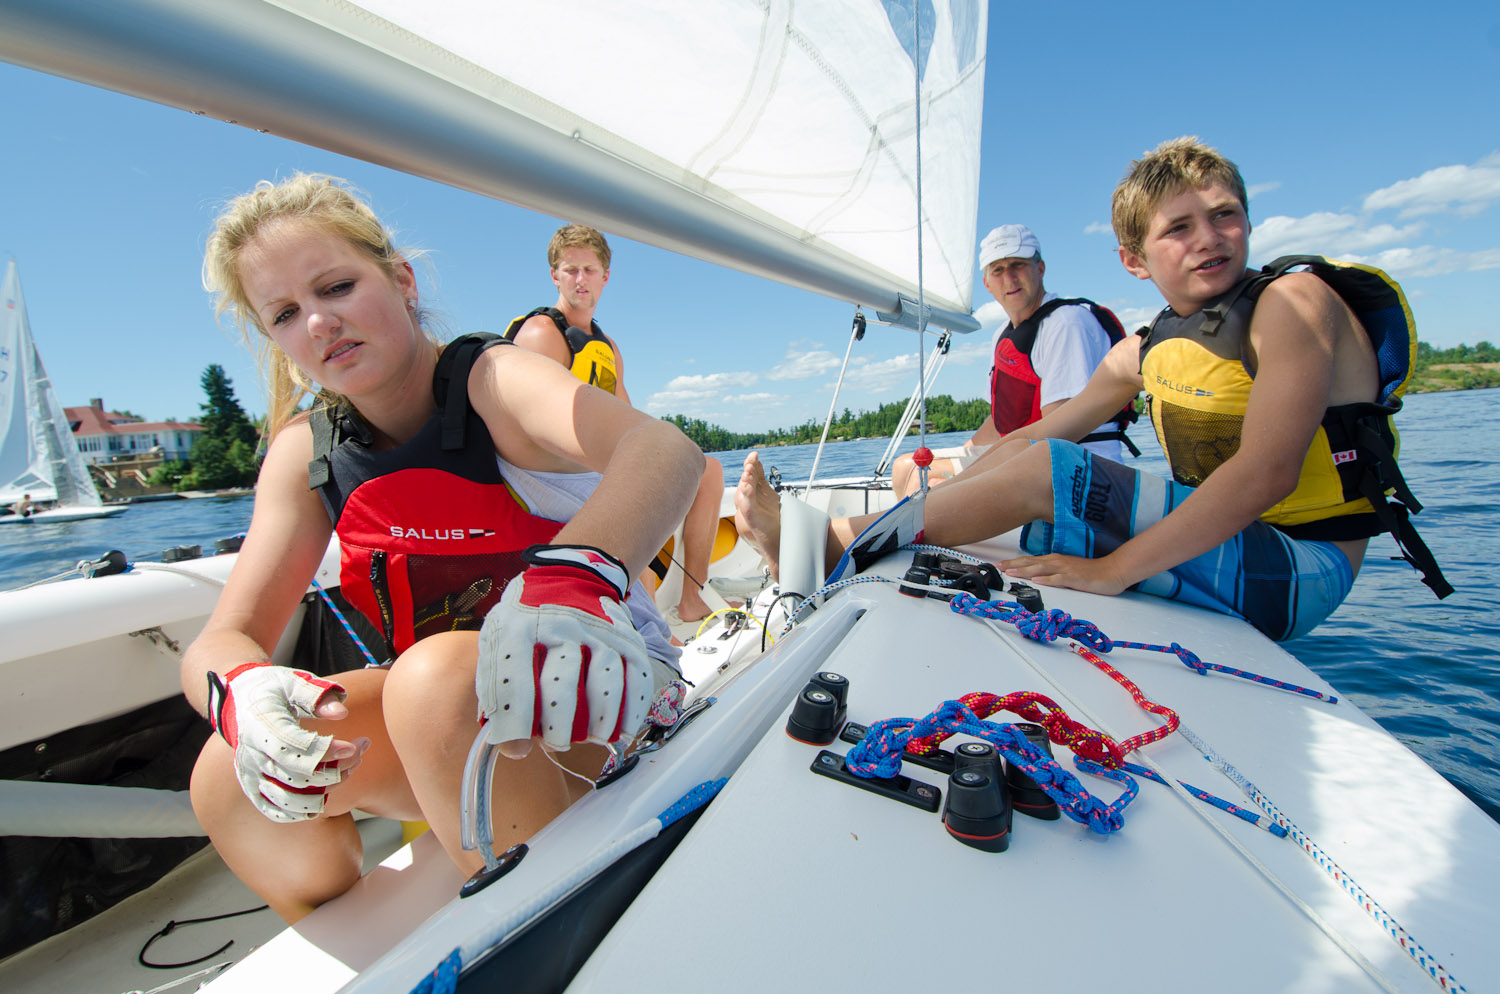 Sailing family by Winnipeg editorial photographer